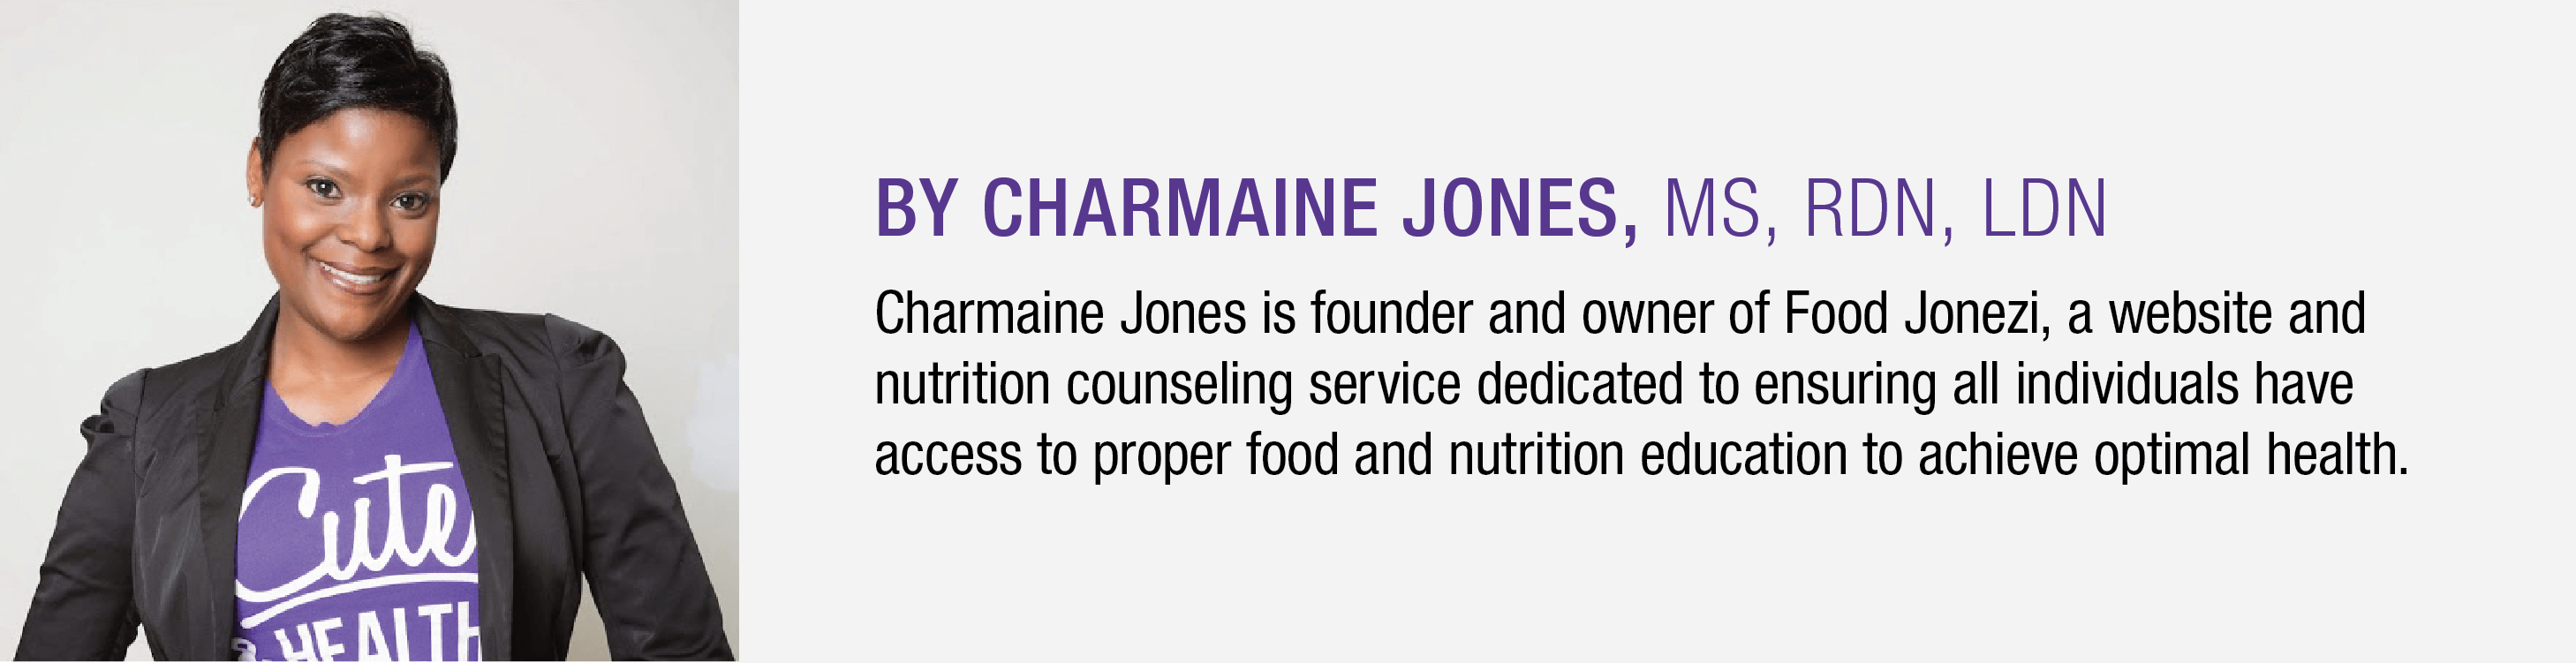 Charmaine Jones bio